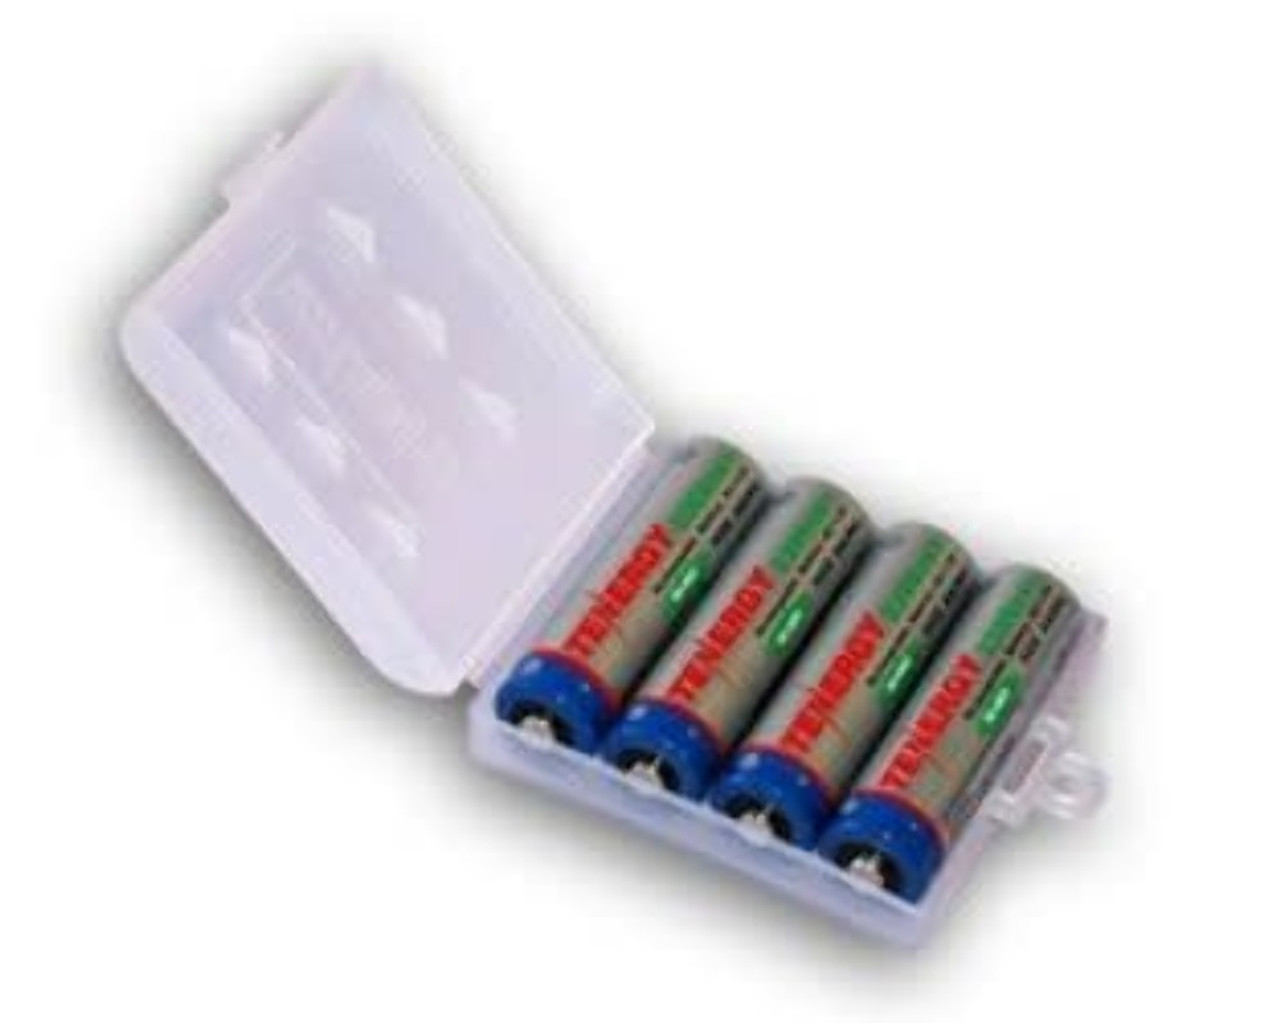 Tenergy Battery Case for AAA batteries